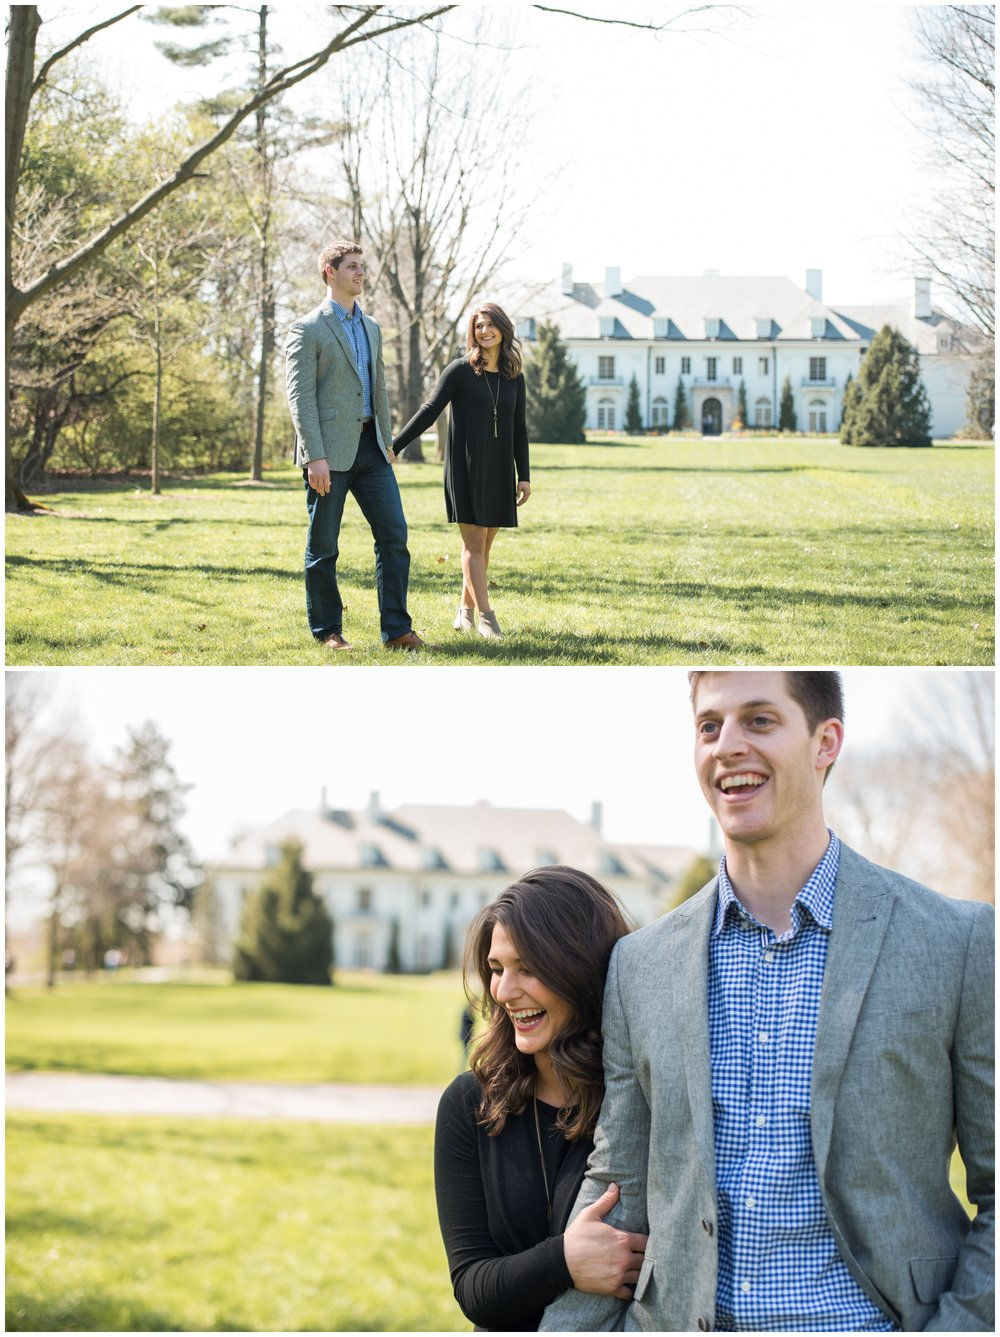 Indianapolis Engagement Session at the IMA by Rachael Foster Photography_0003.jpg